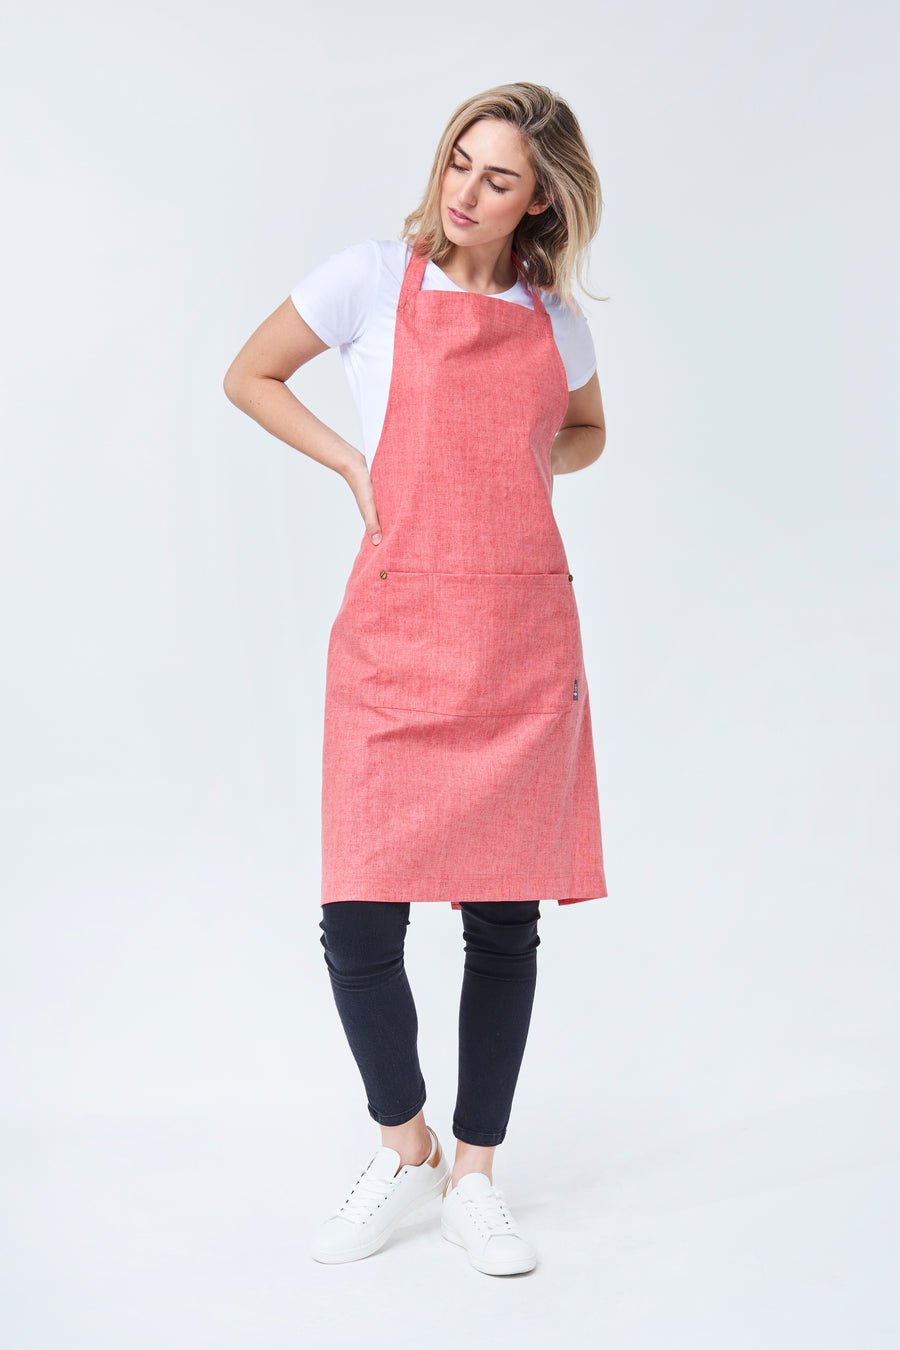 CLEMENTINE BIB Apron with metal trims - Raspberry Linen